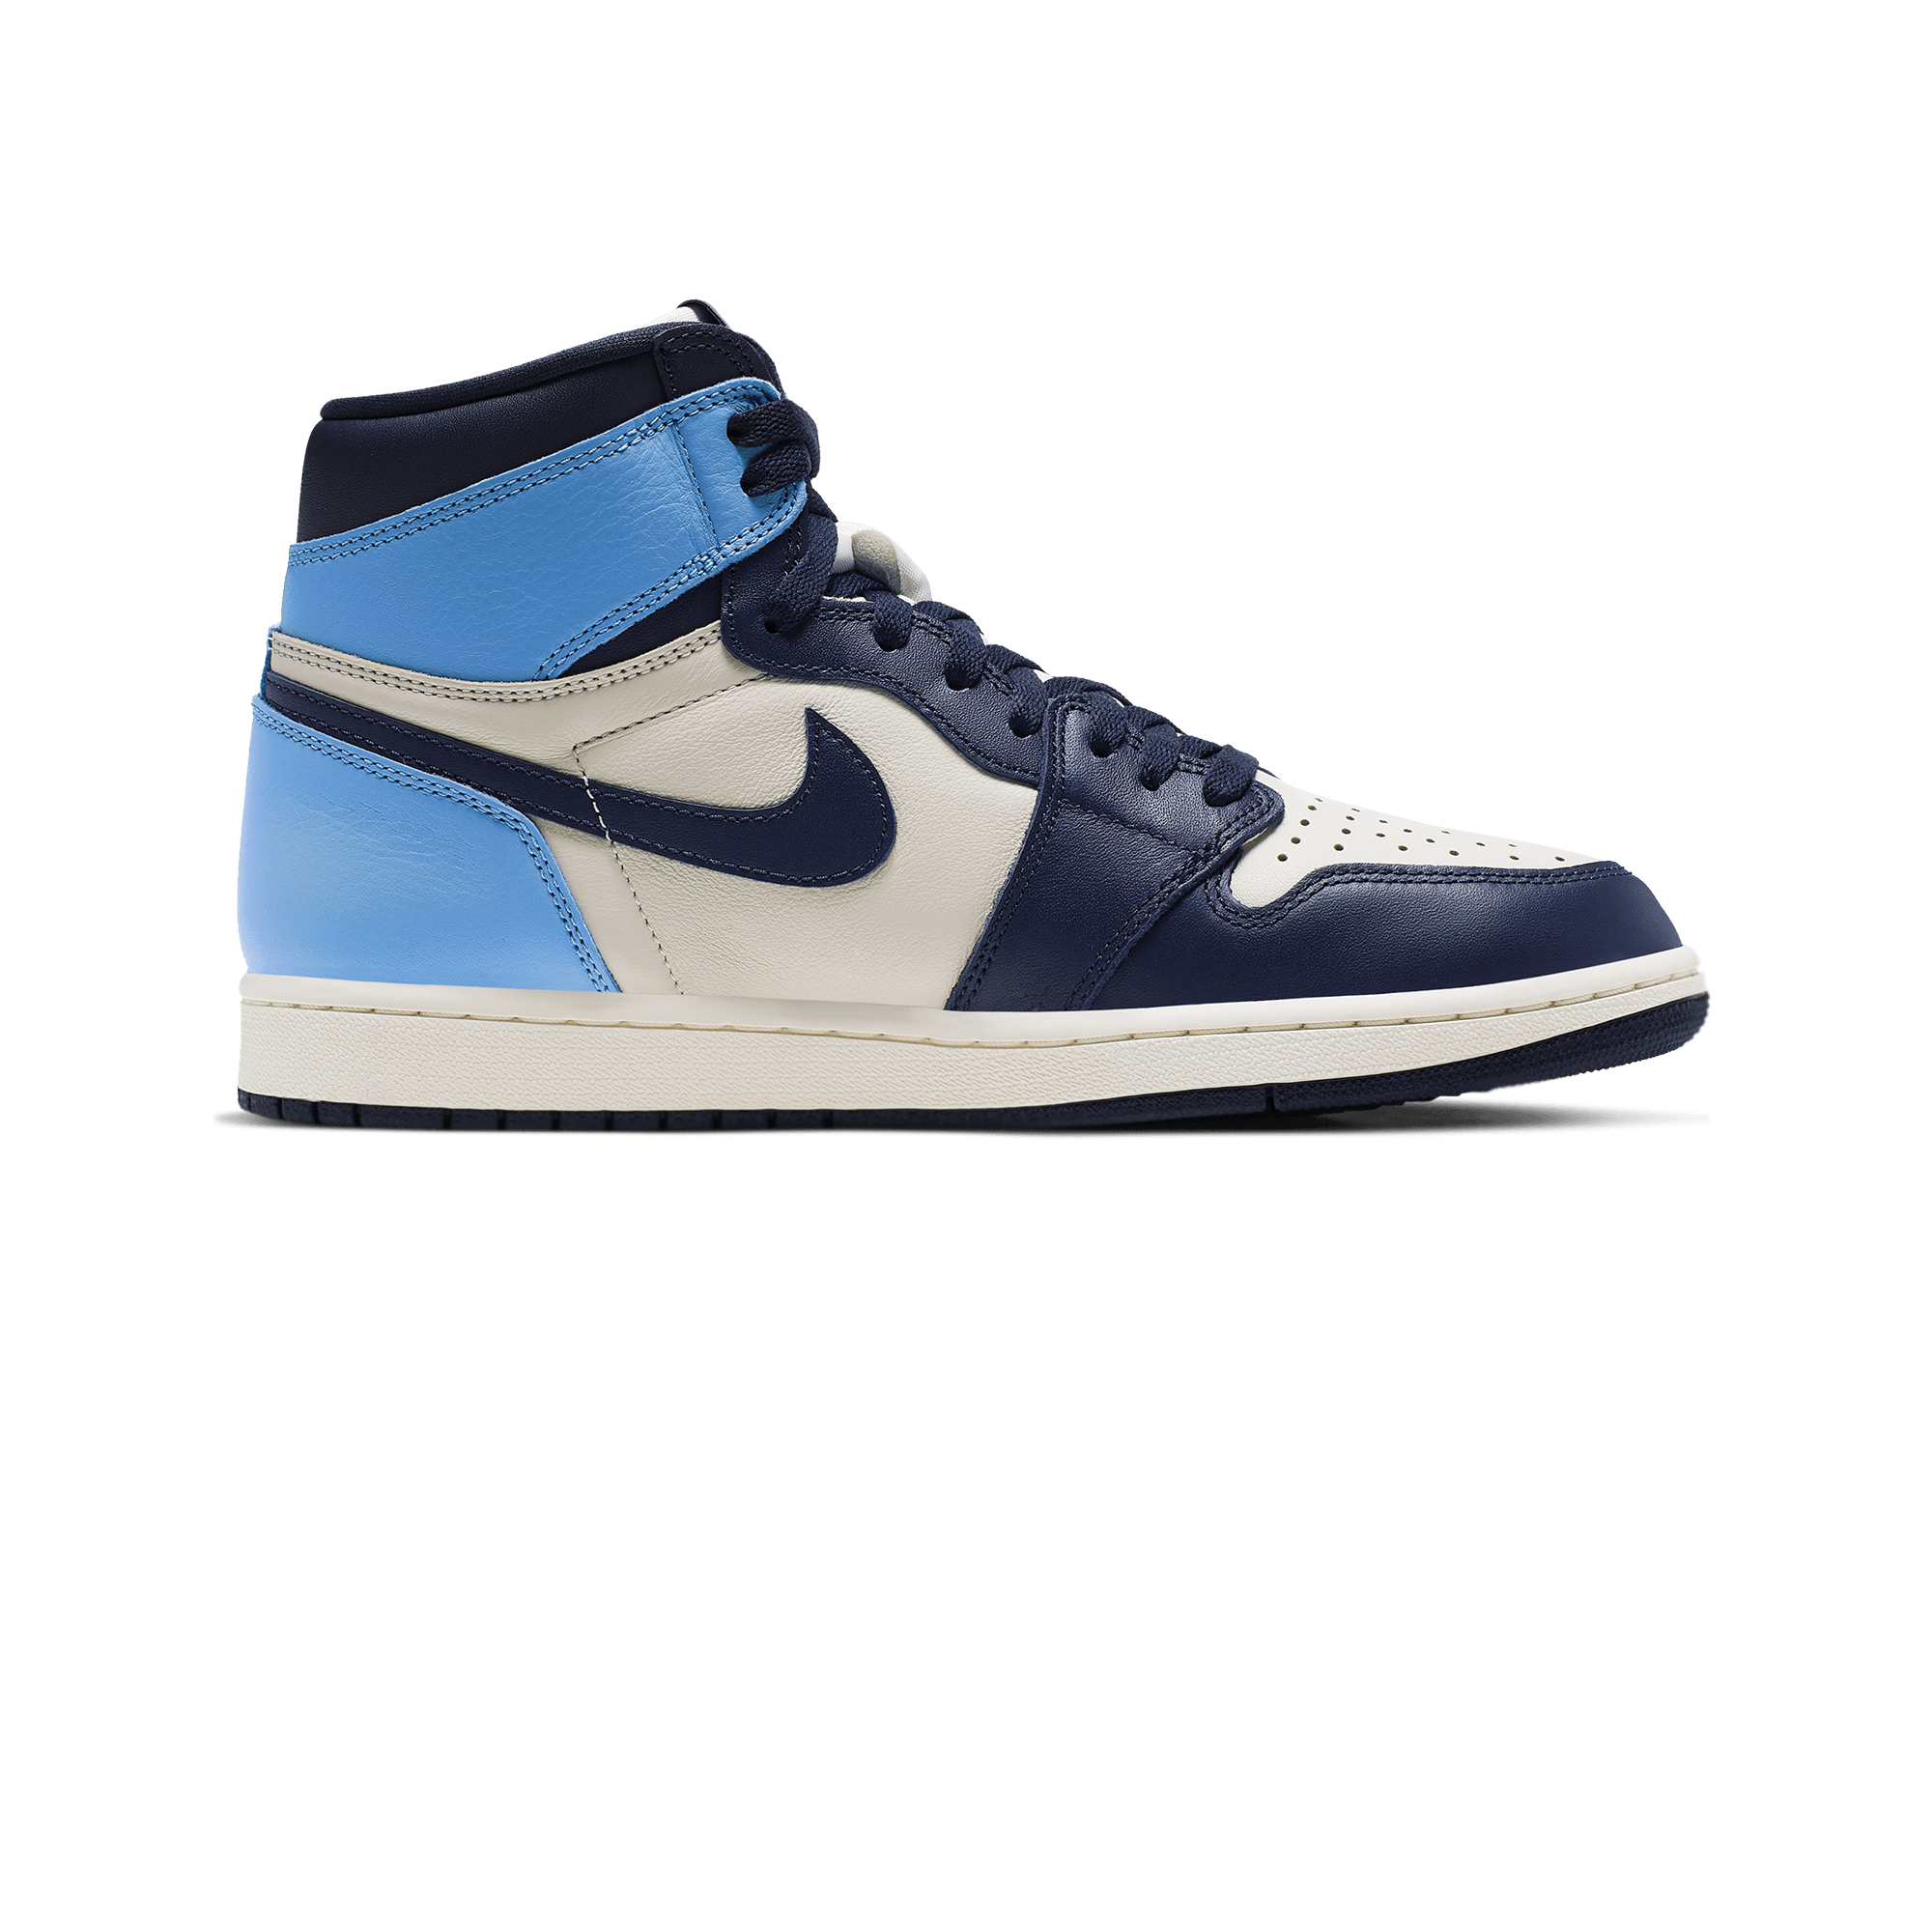 half off f864b aa936 Air Jordan Jordan 1 Retro High OG sail / obsidian / university blue - Uomo  | Holypopstore.com